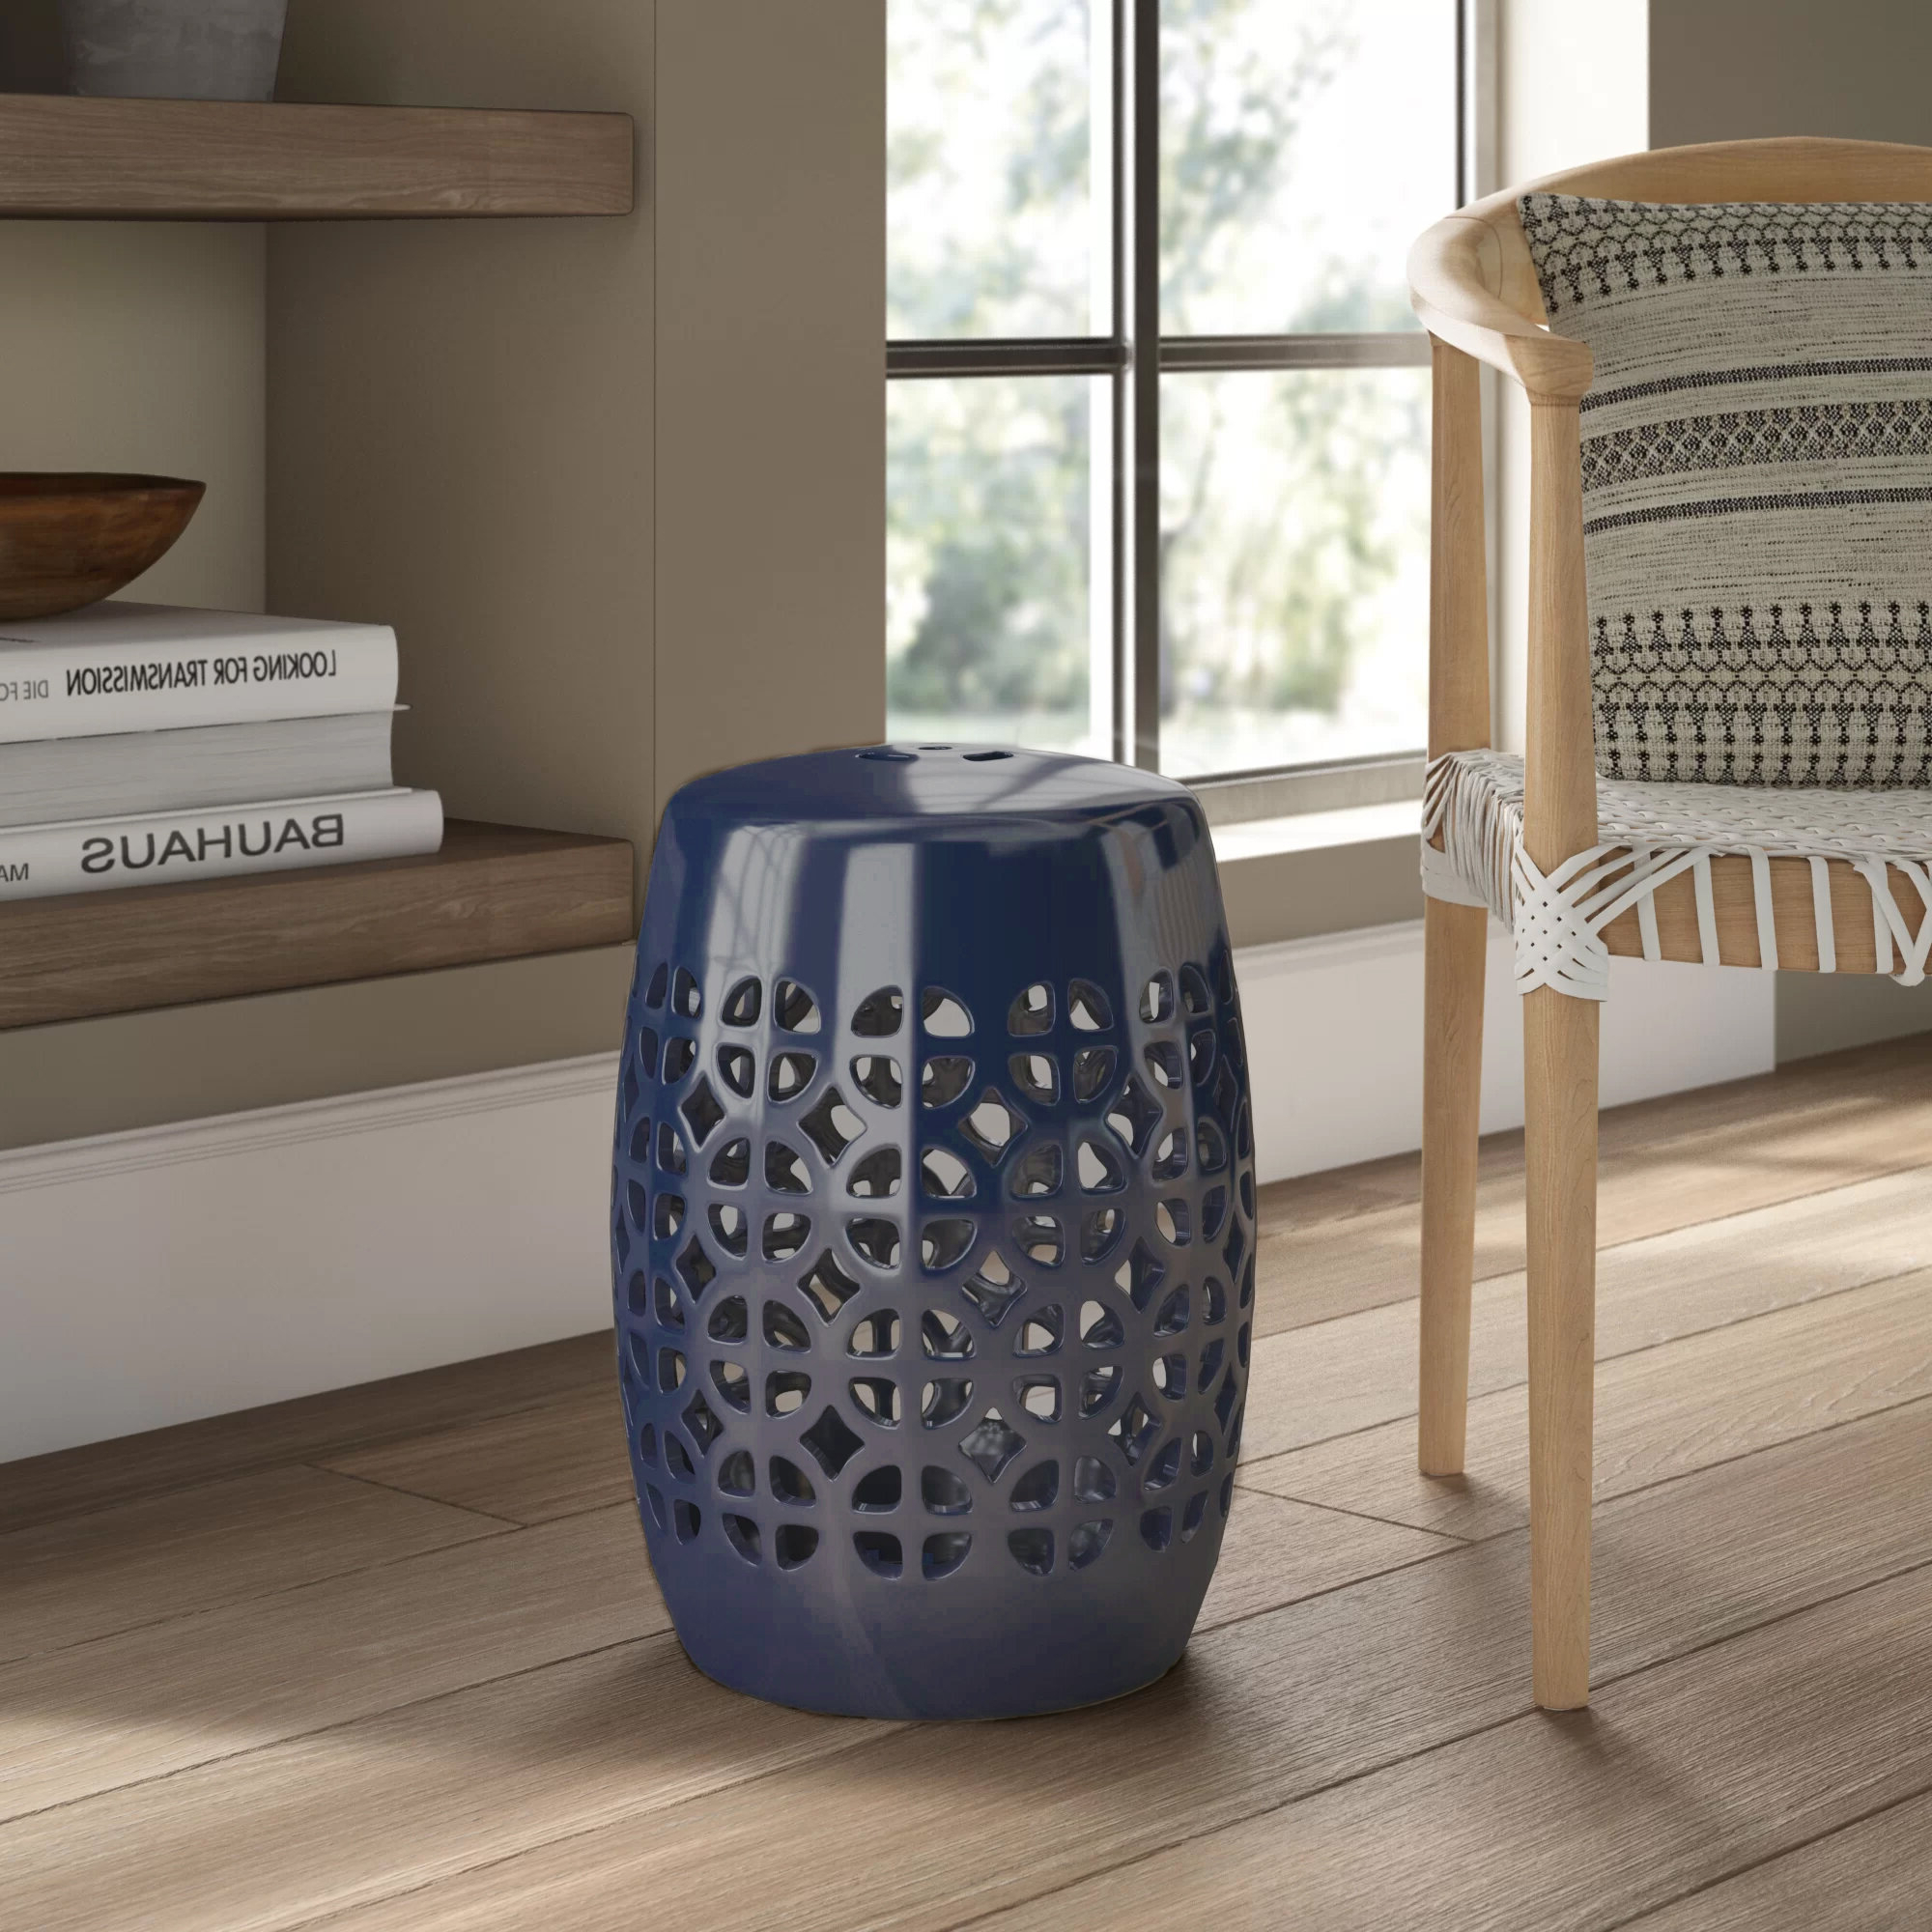 Keswick Ceramic Garden Stool Throughout 2019 Tillia Ceramic Garden Stools (View 12 of 30)